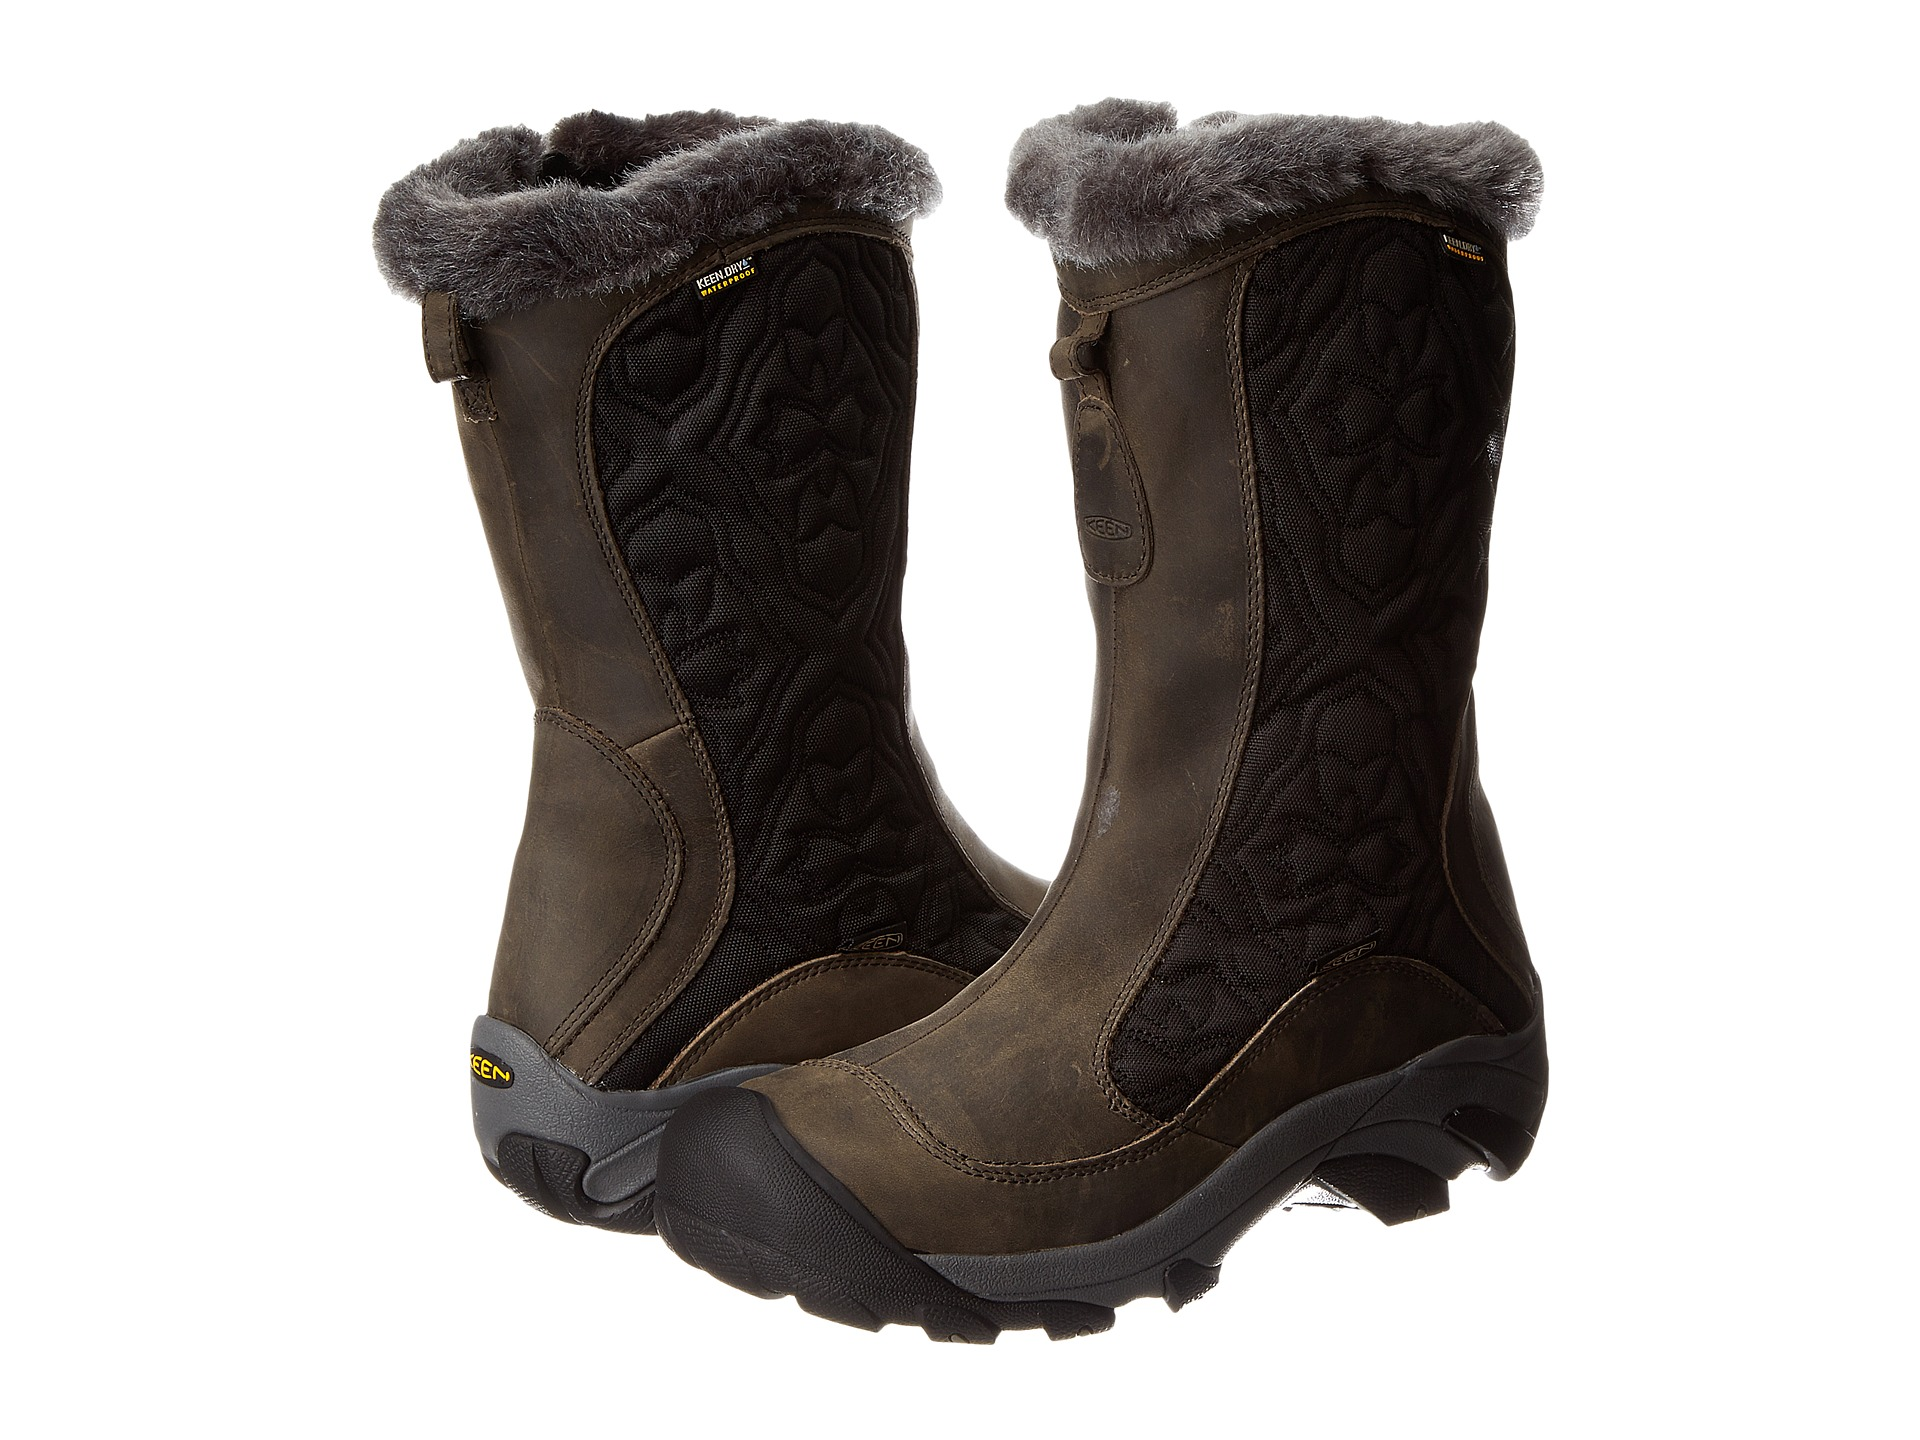 keen betty boot ii raven gargoyle shoes shipped free at zappos. Black Bedroom Furniture Sets. Home Design Ideas